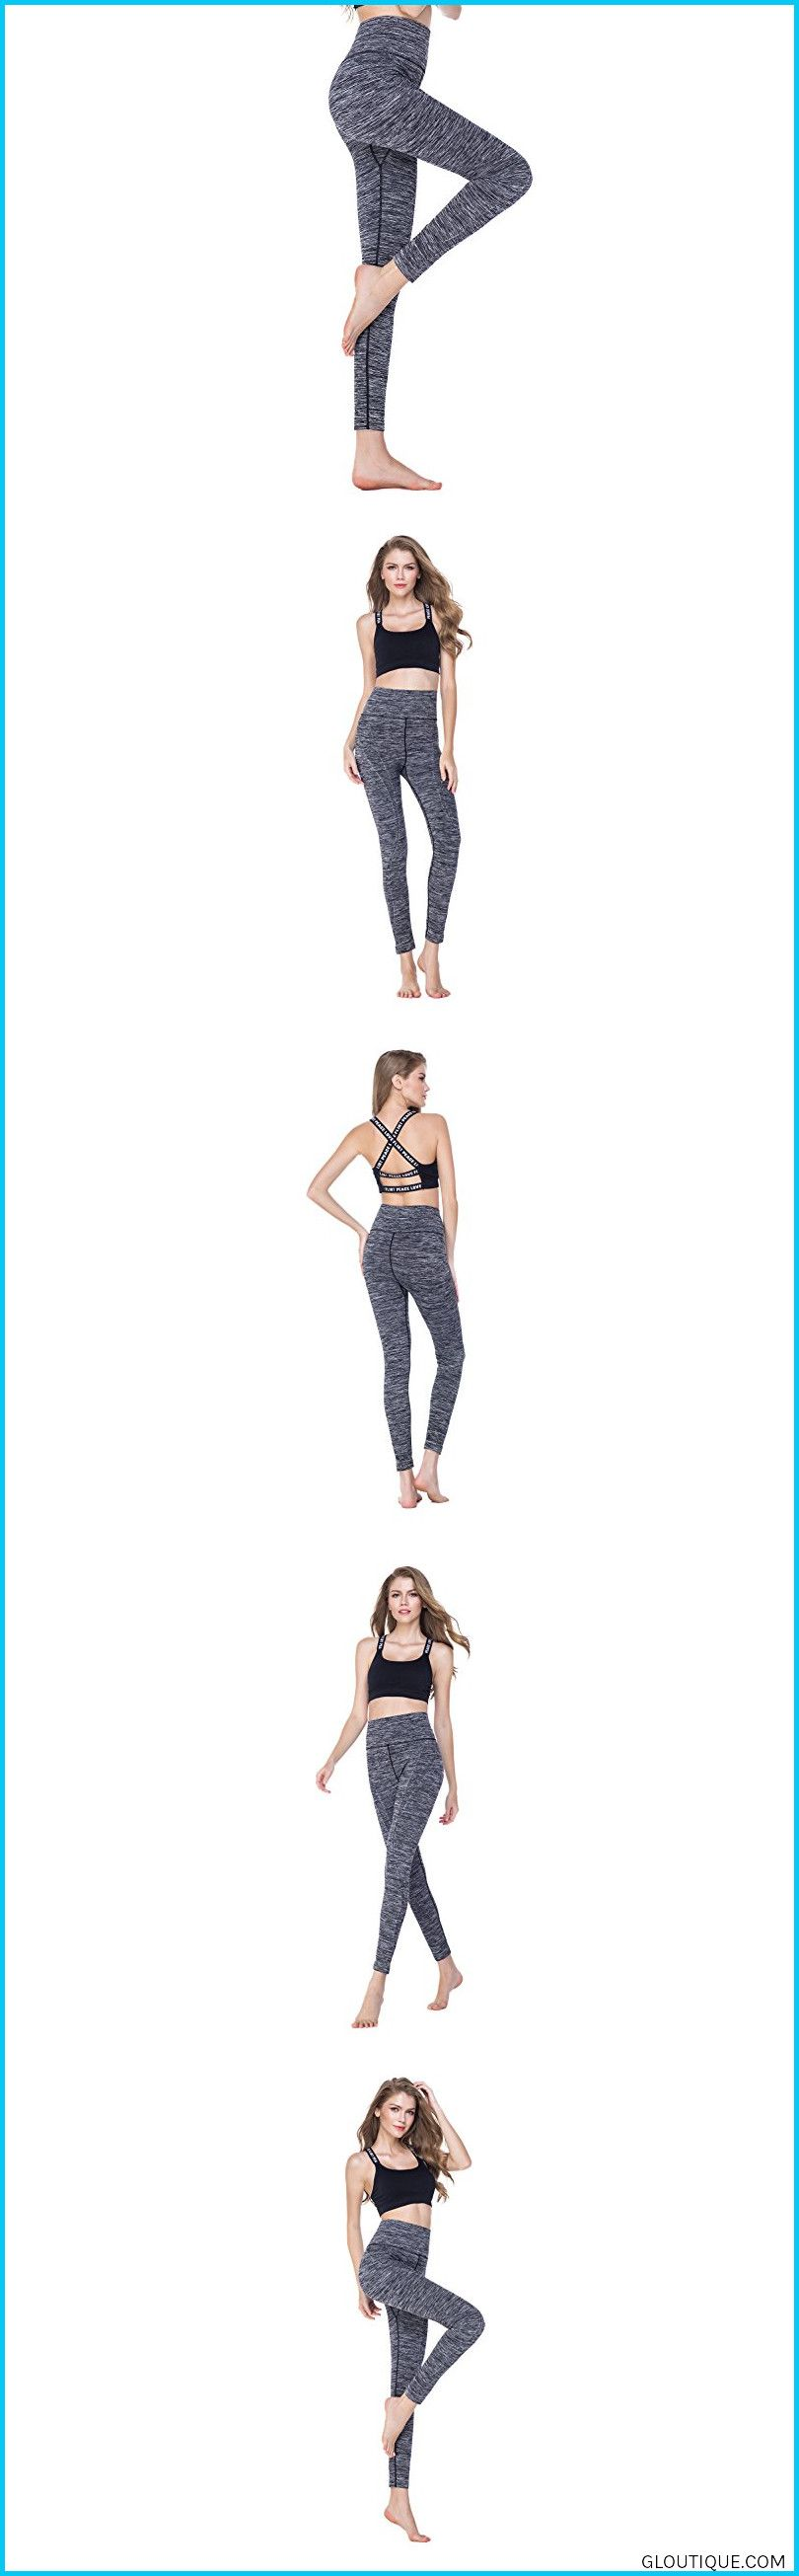 8123171b3e Tirrinia Women's High Waisted Yoga Pants Workout Leggings. STRETCH FABRICS  - Women's workout pants features moisture wicking, non see-through and  4-way ...